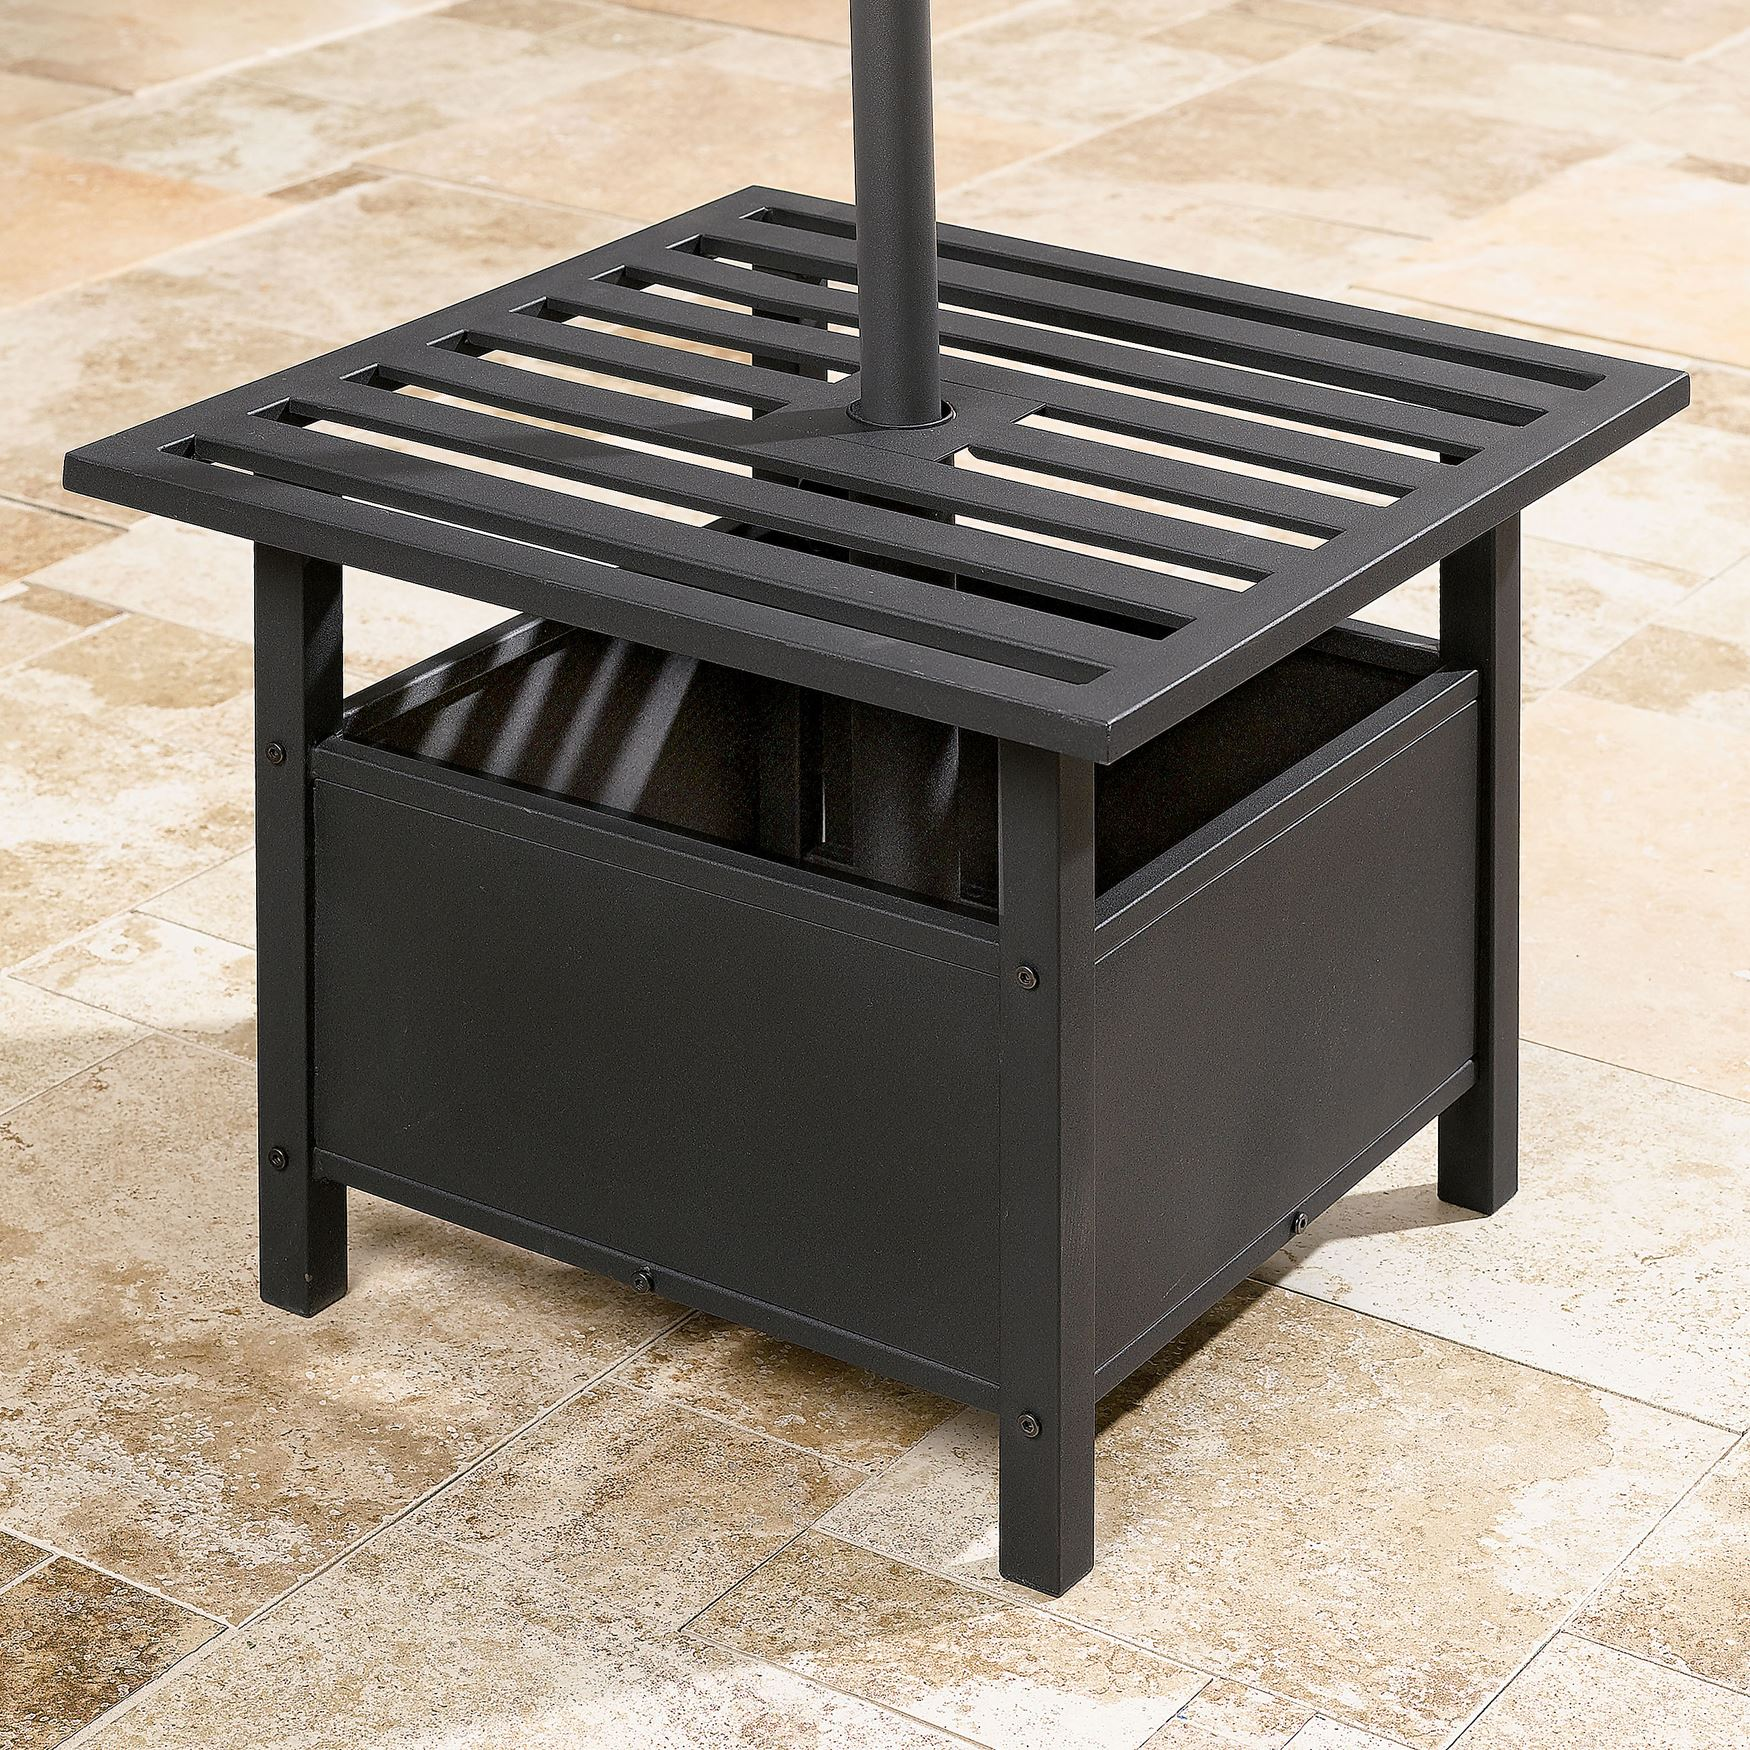 patio side table styles meaningful use home designs black outdoor accent tables shoe organizer target metal trestle marble white shuffleboard lamp with usb port narrow nightstand